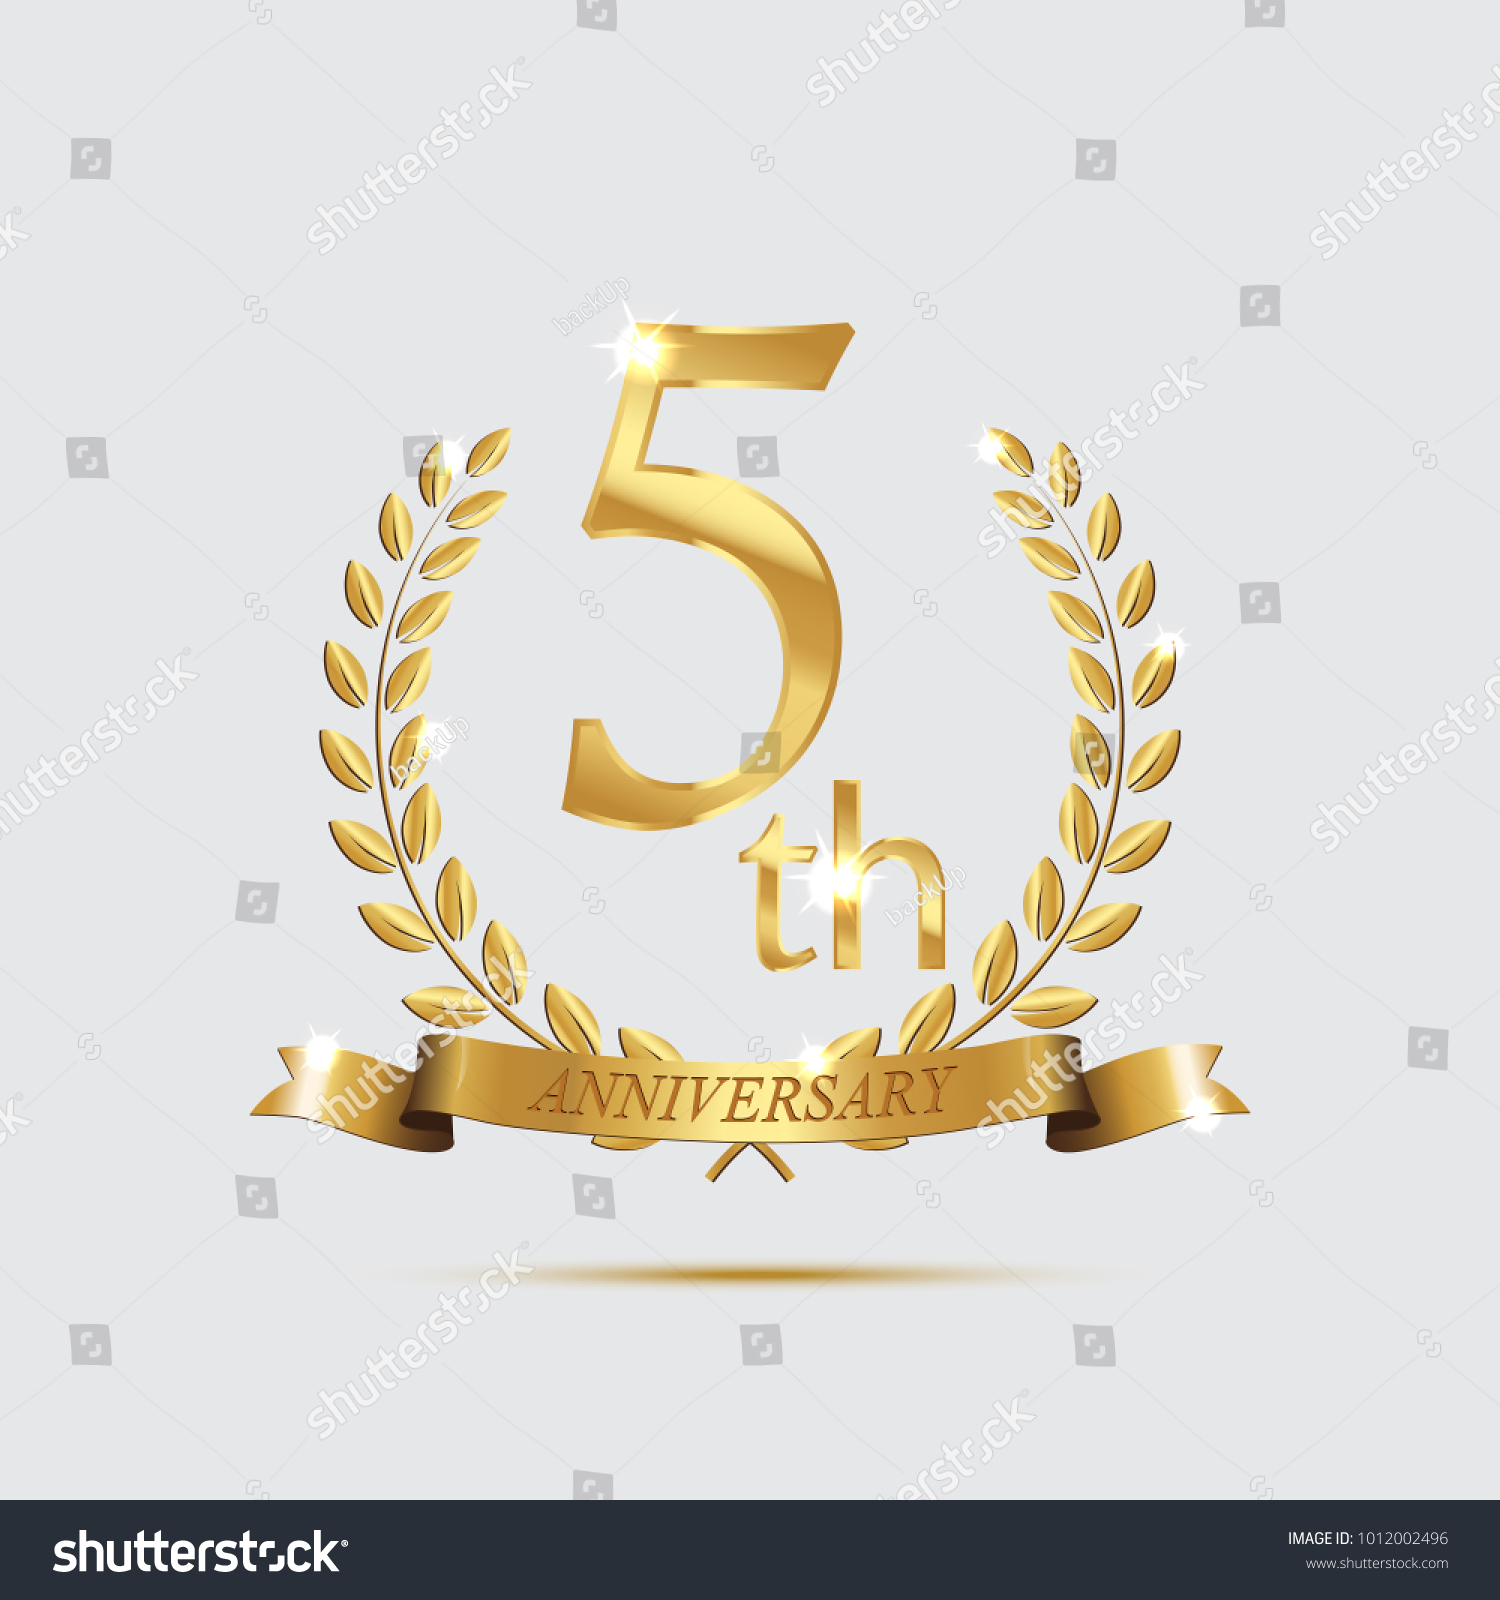 5th anniversary golden symbol golden laurel stock vector 5 th anniversary golden symbol golden laurel wreaths with ribbons and fifth anniversary year biocorpaavc Gallery